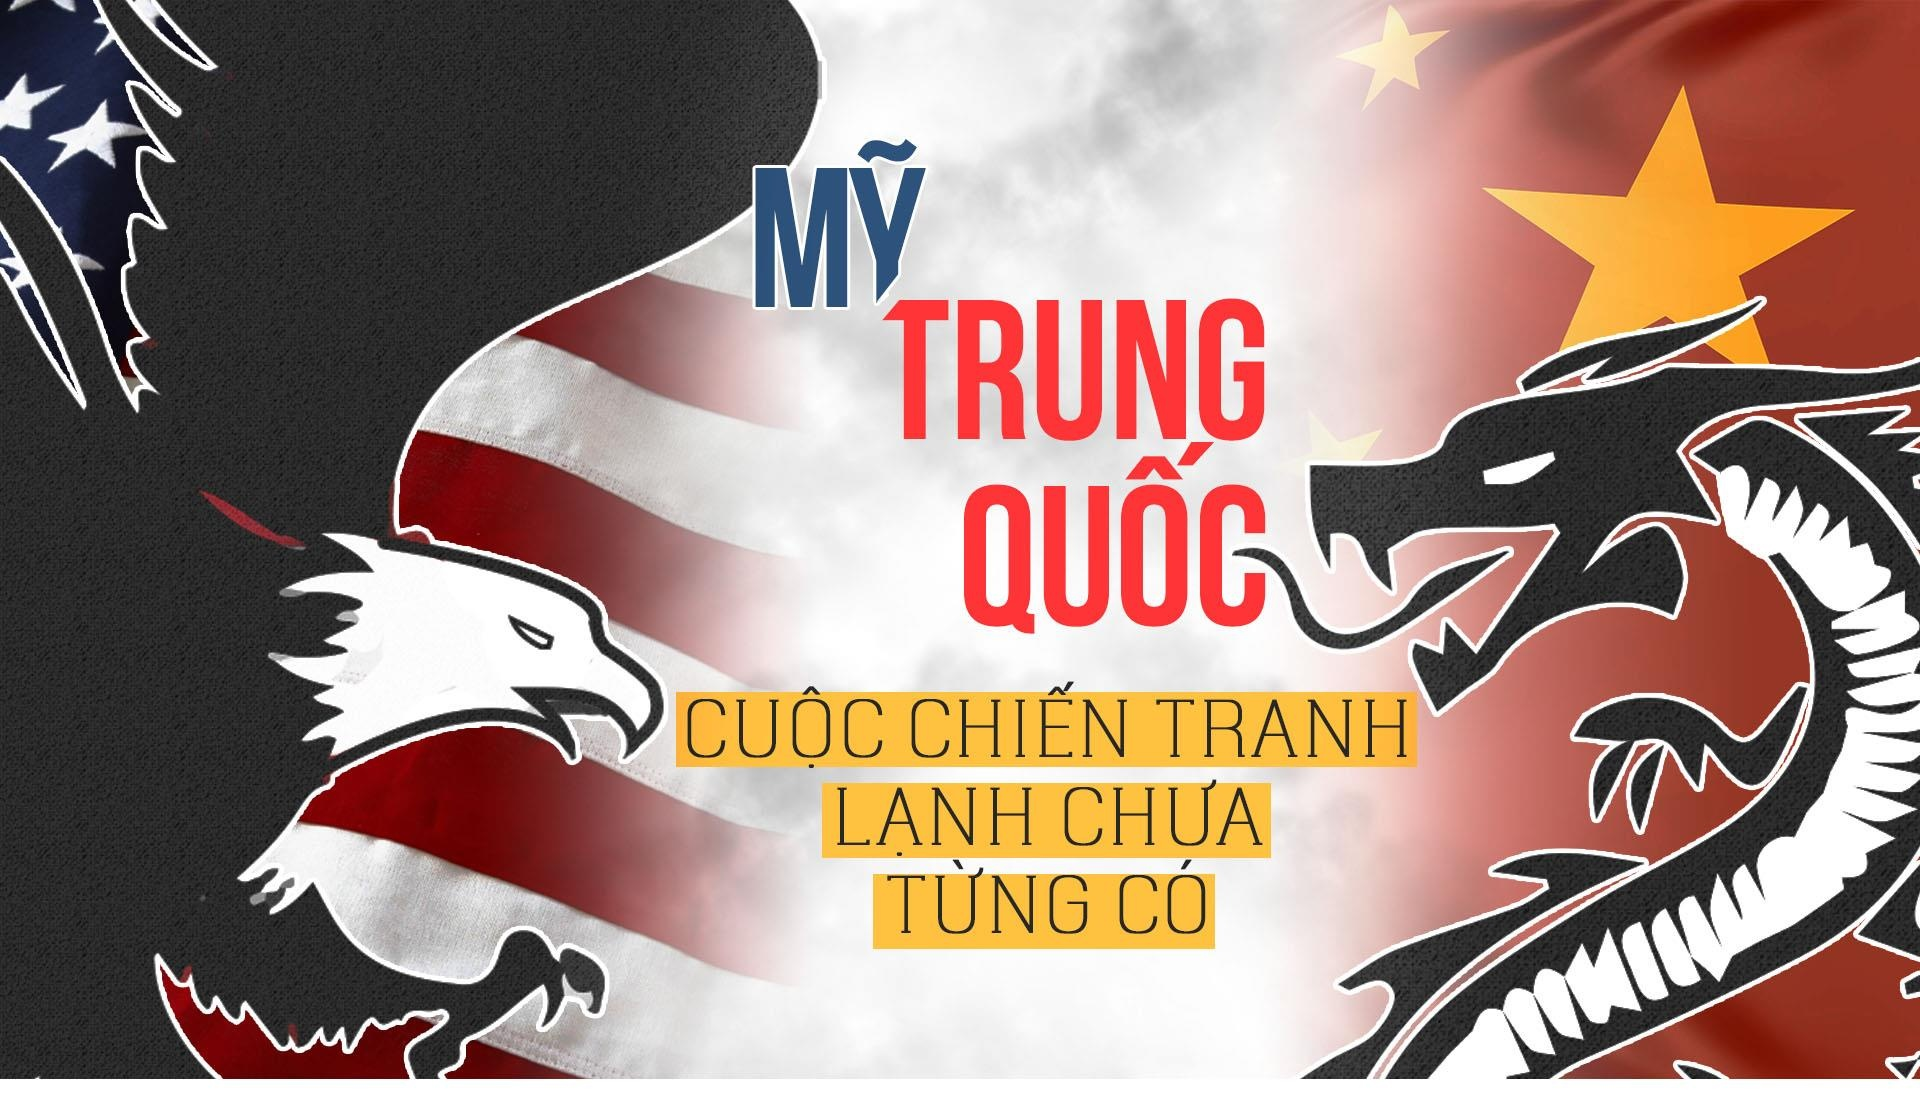 My Trung Quoc chien tranh lanh anh 2